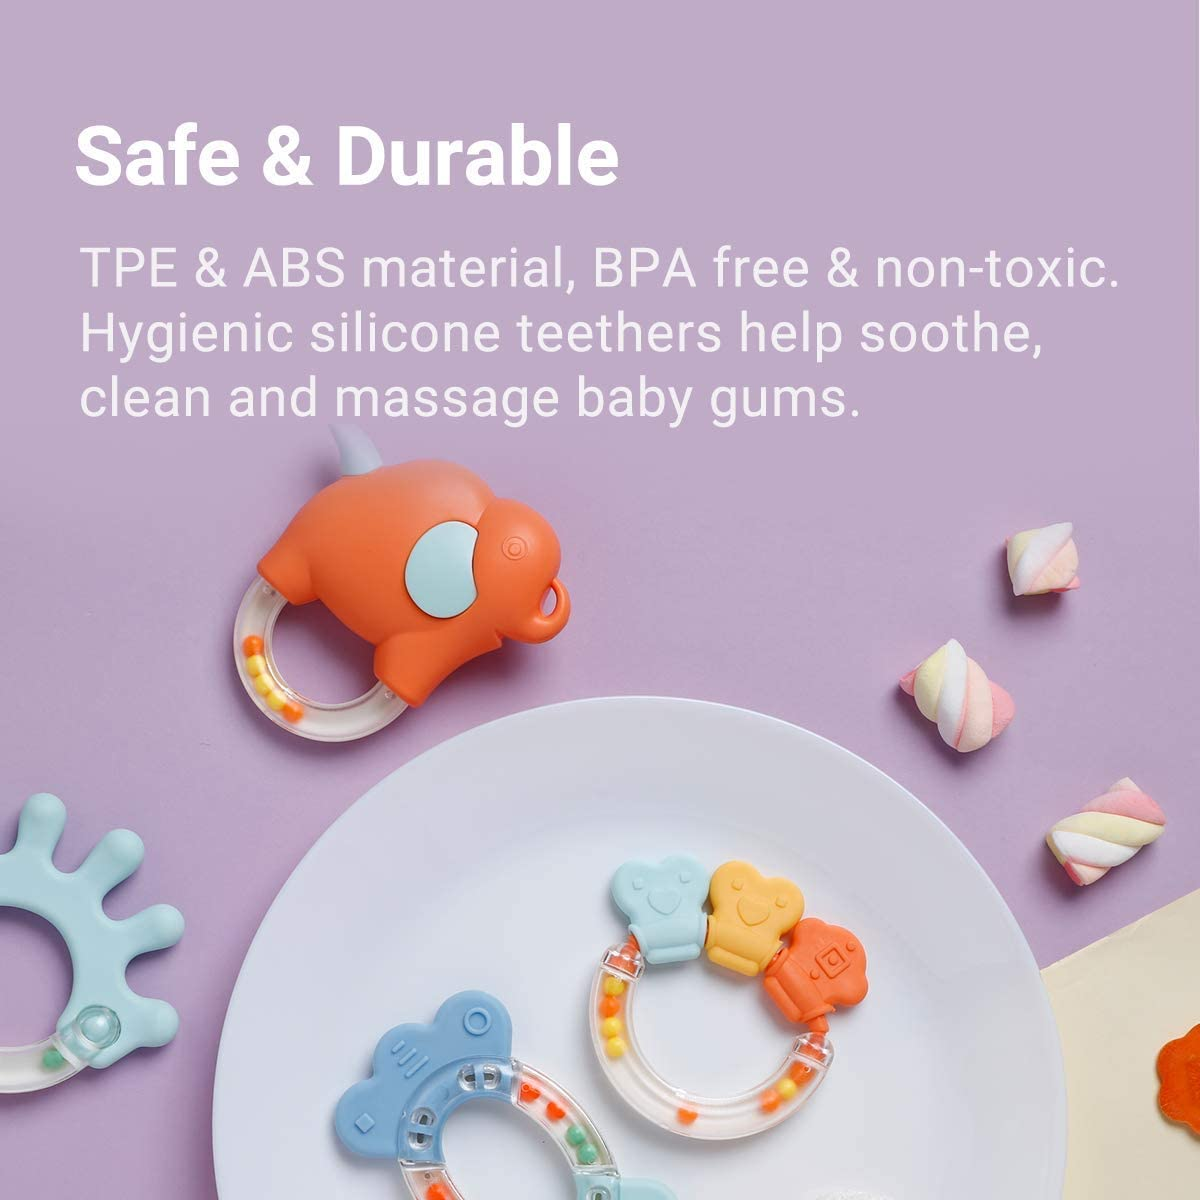 9 Months Old Teething Toddlers and Newborn alilo Baby Rattle Teethers Set 8pcs Easy to Chew Early Development and Education Gift Set for 3 Boys and Girls Grab /& Shake 6 Infant Shaker